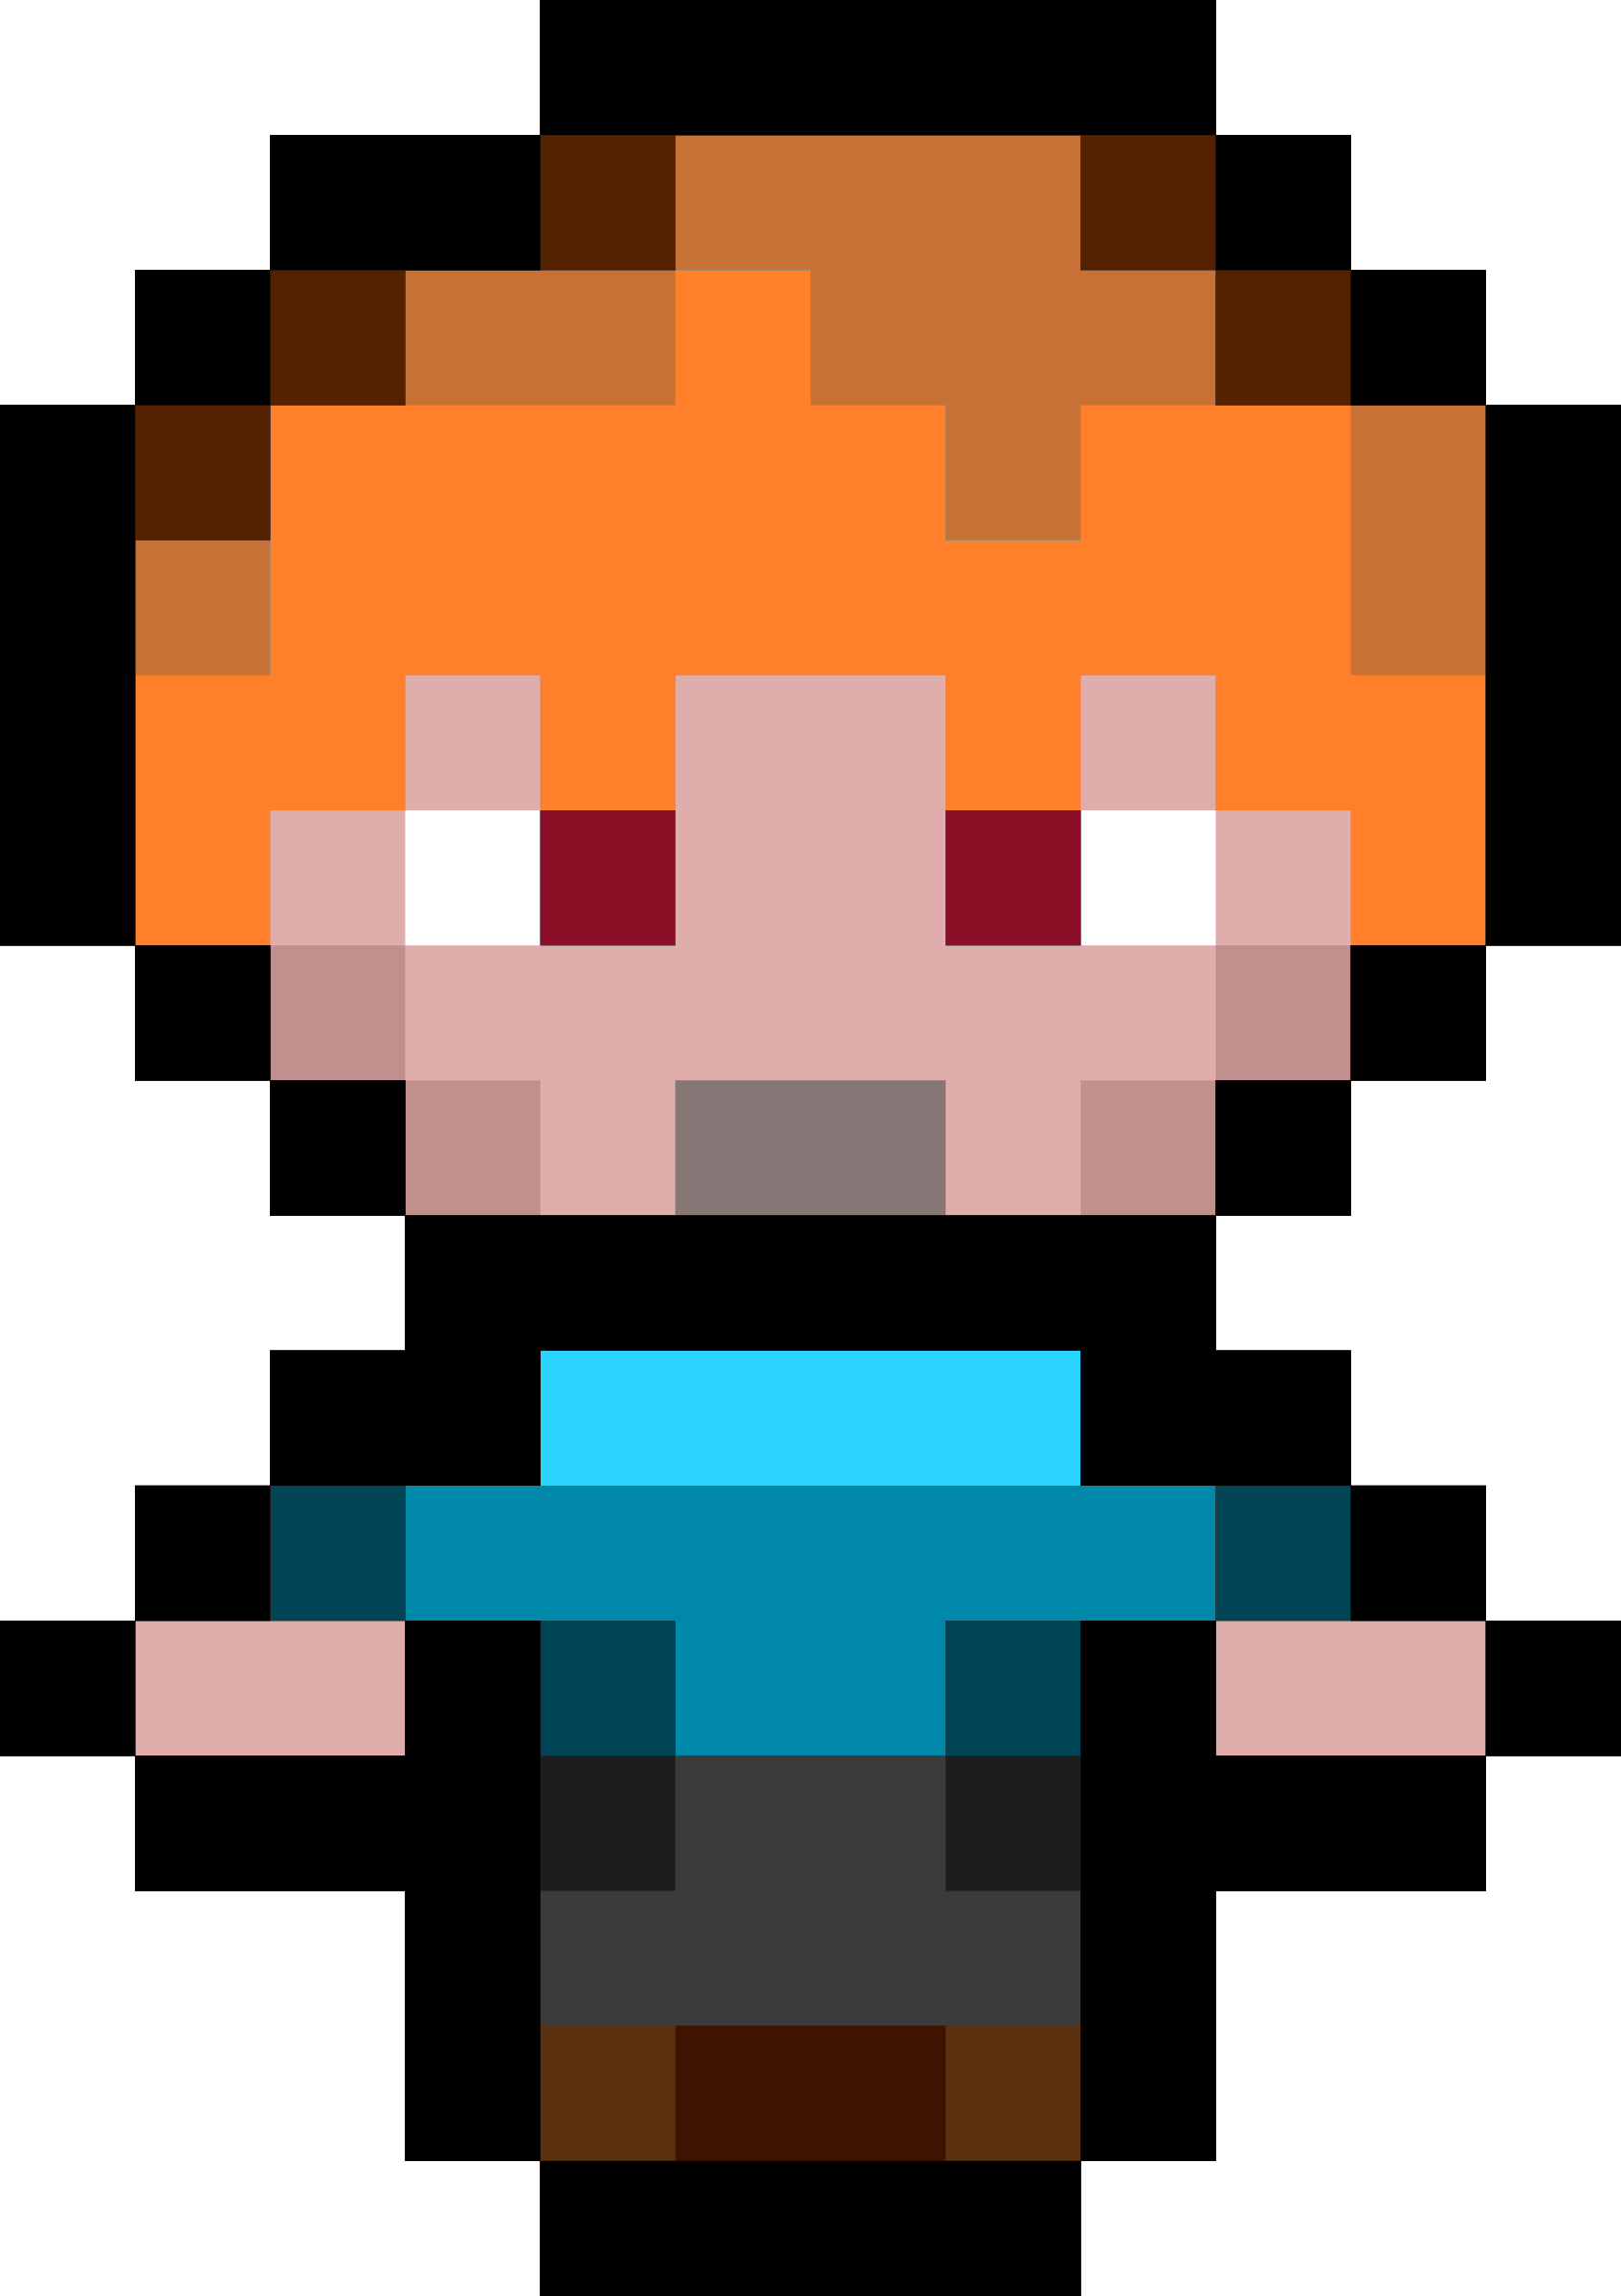 Pixel Character 2 by isaiah658